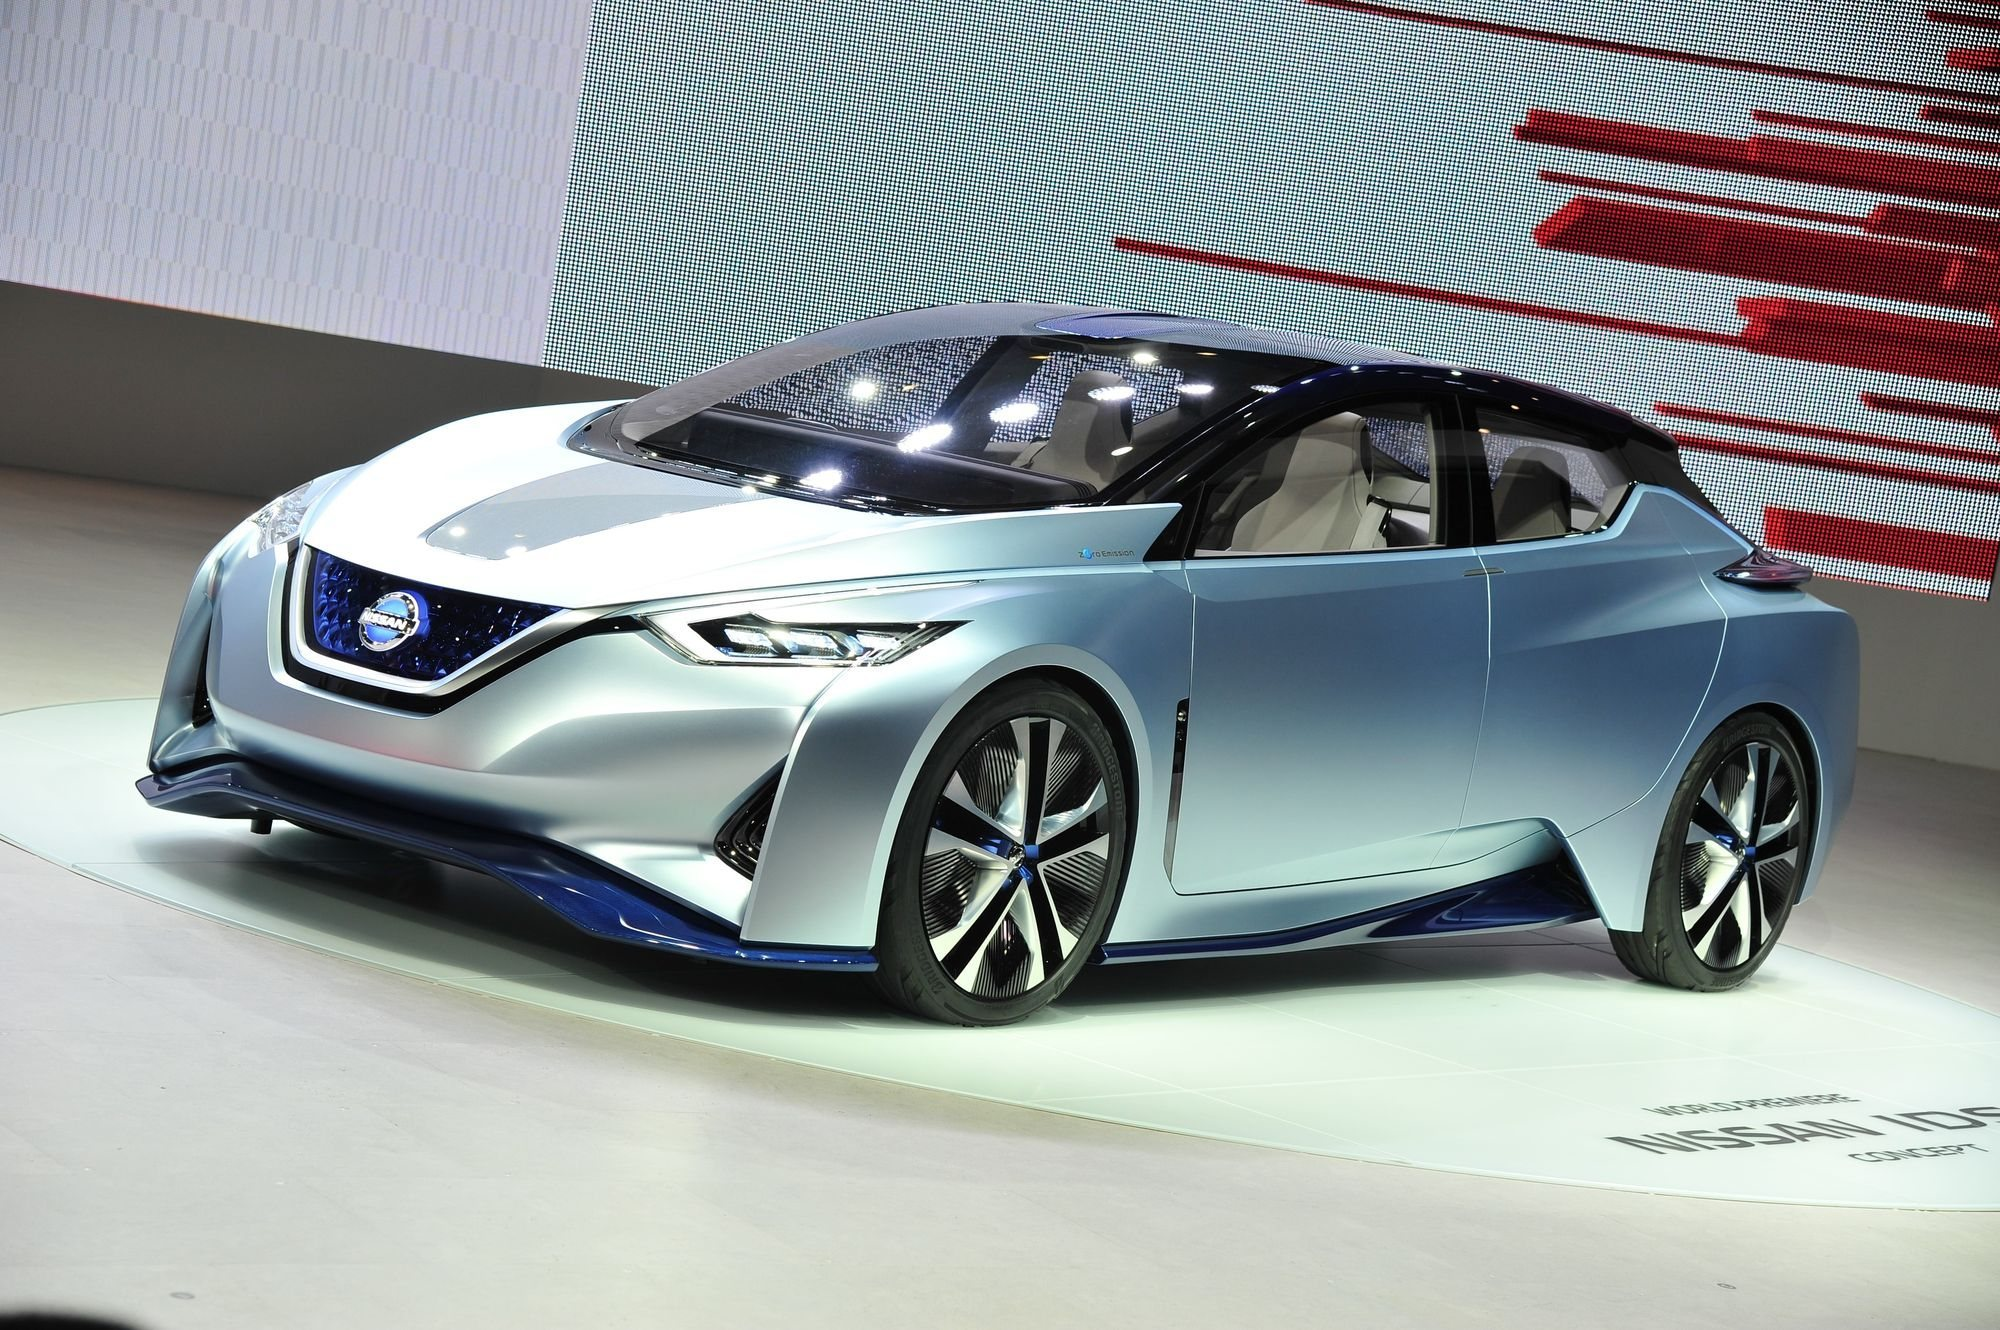 electric london streets car s nissan nissans gettyimages test techcrunch tackles self driving